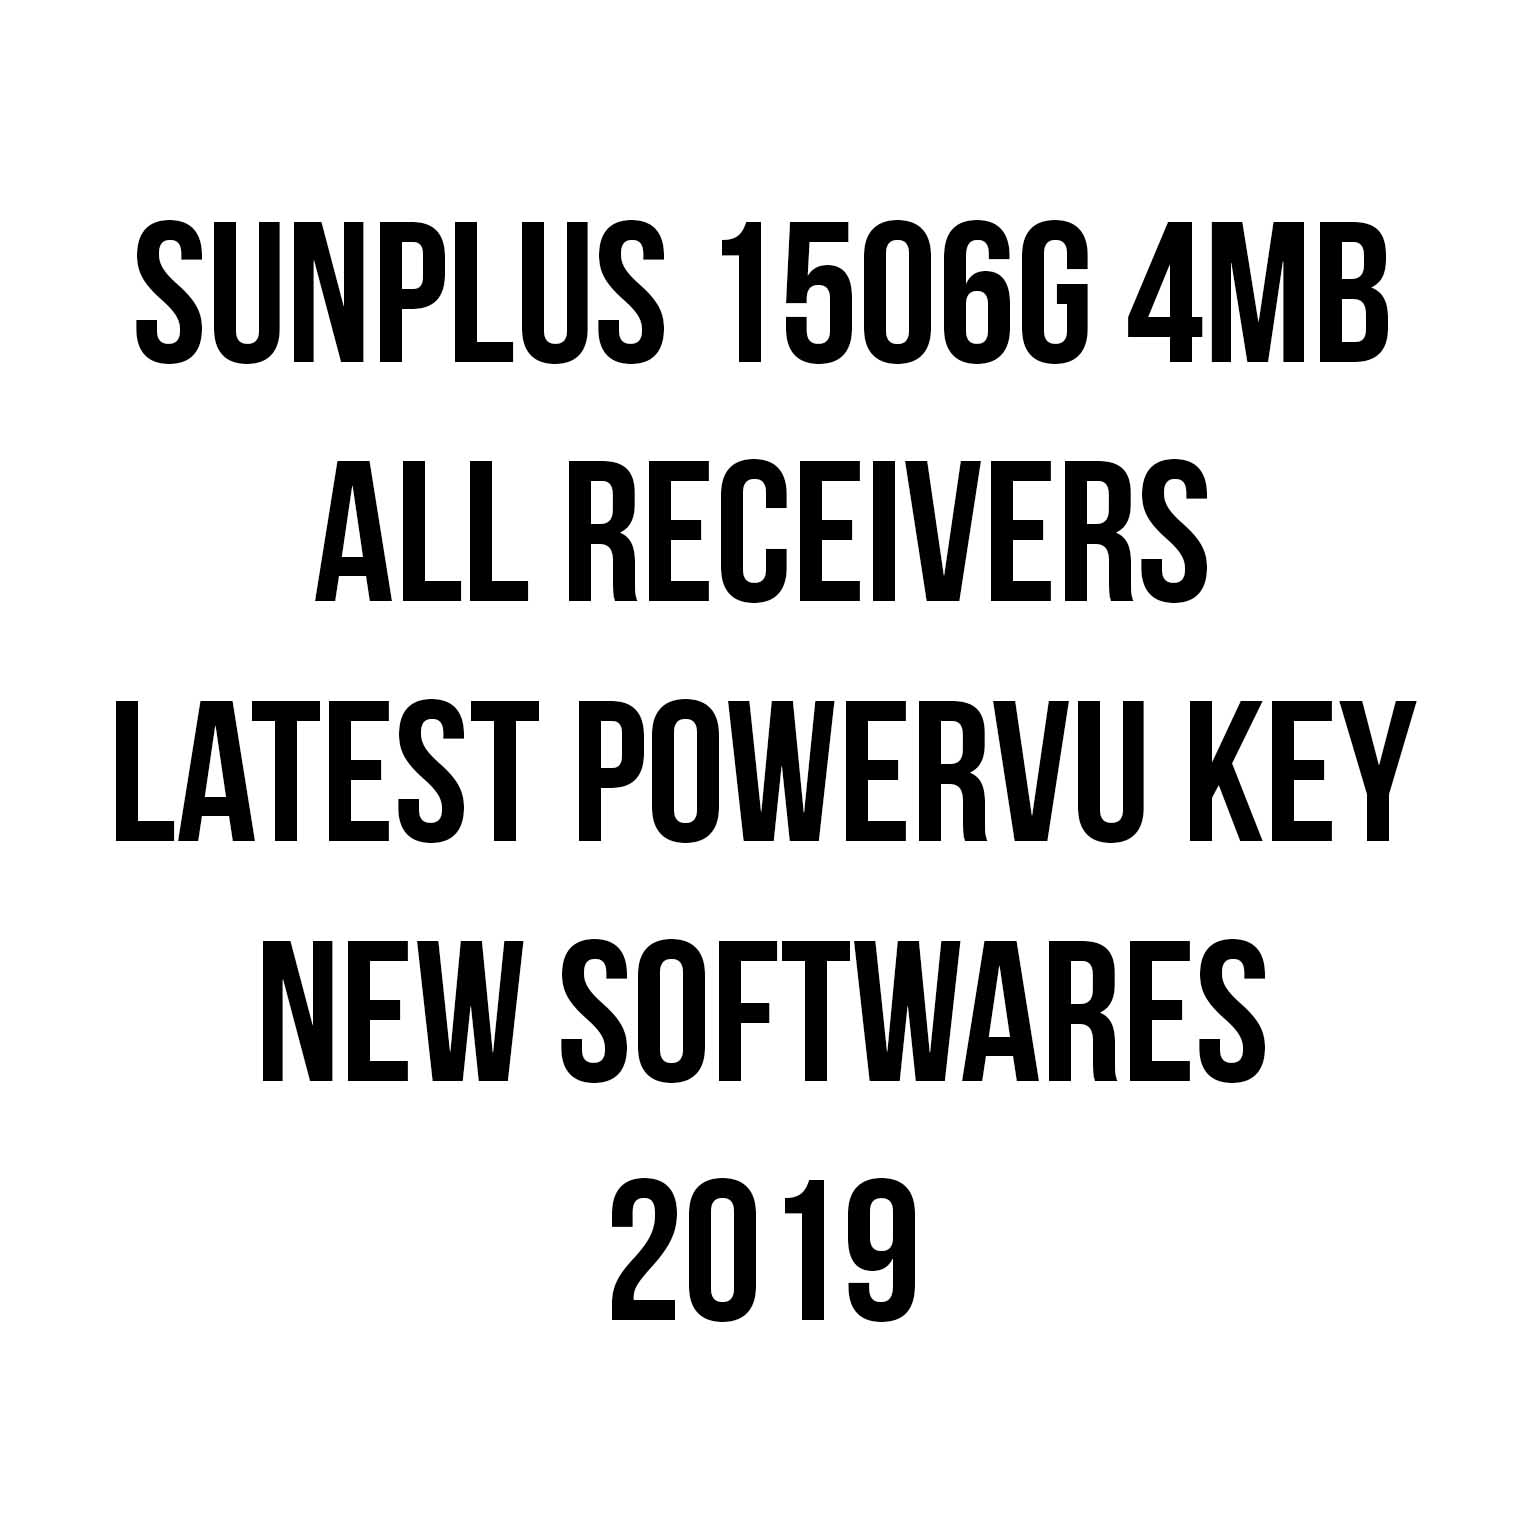 Sunplus 1506g All Receivers Latest PowerVU Key New Softwares